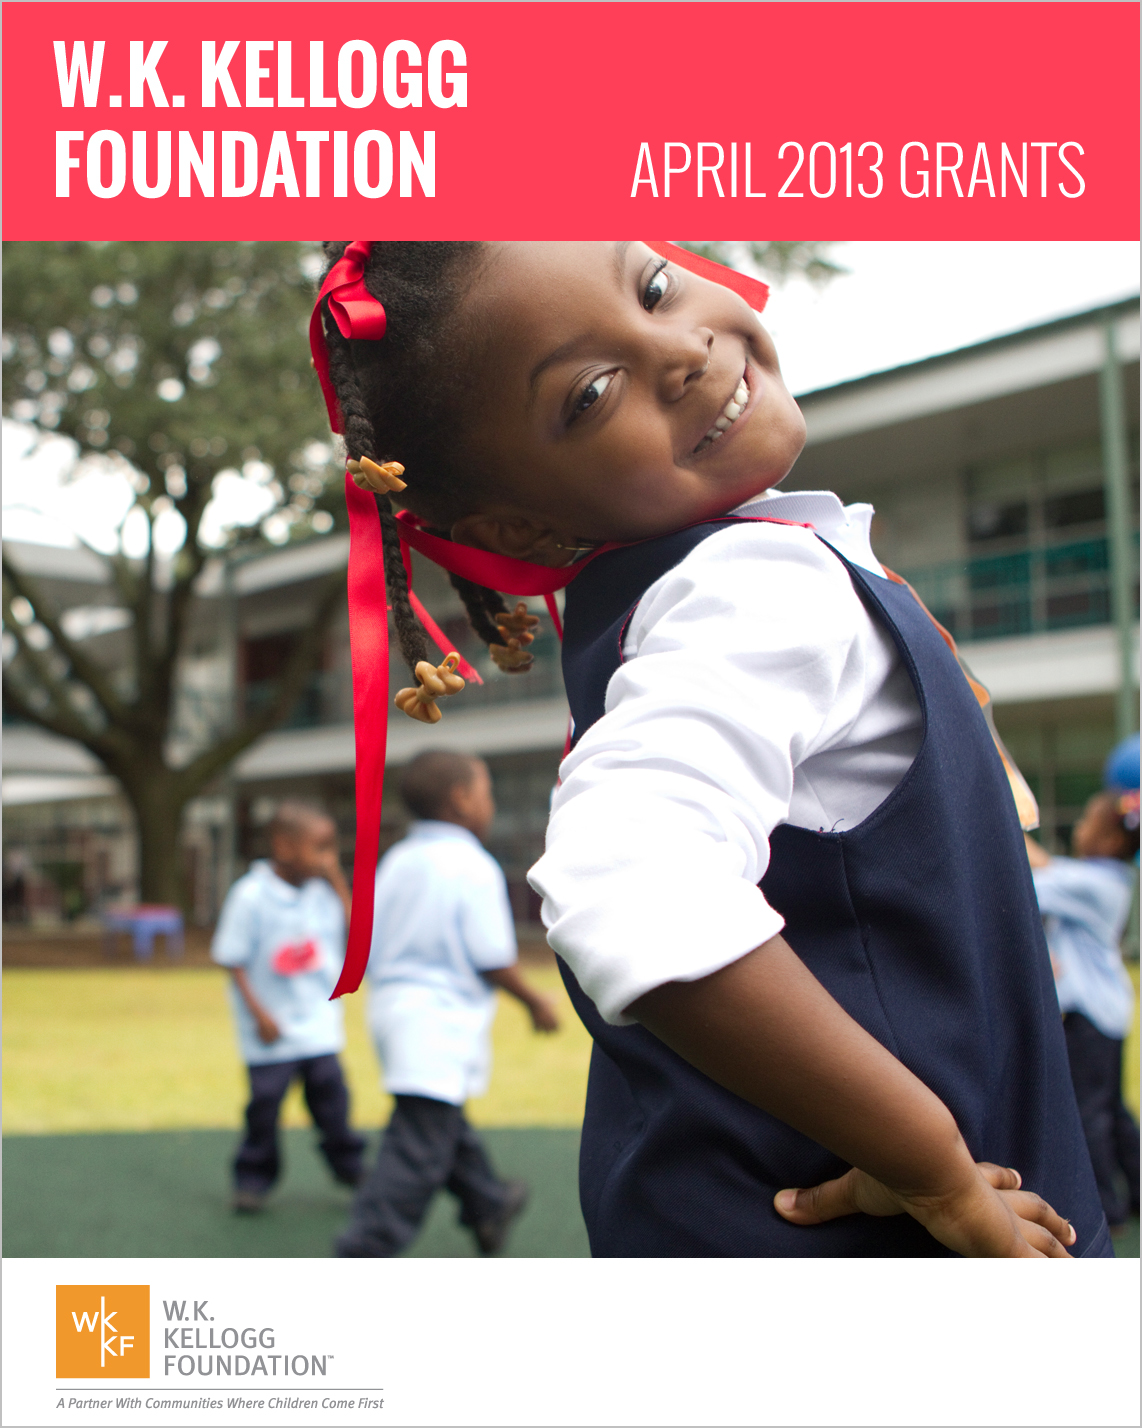 W.K. Kellogg Foundation Grants - April 2013